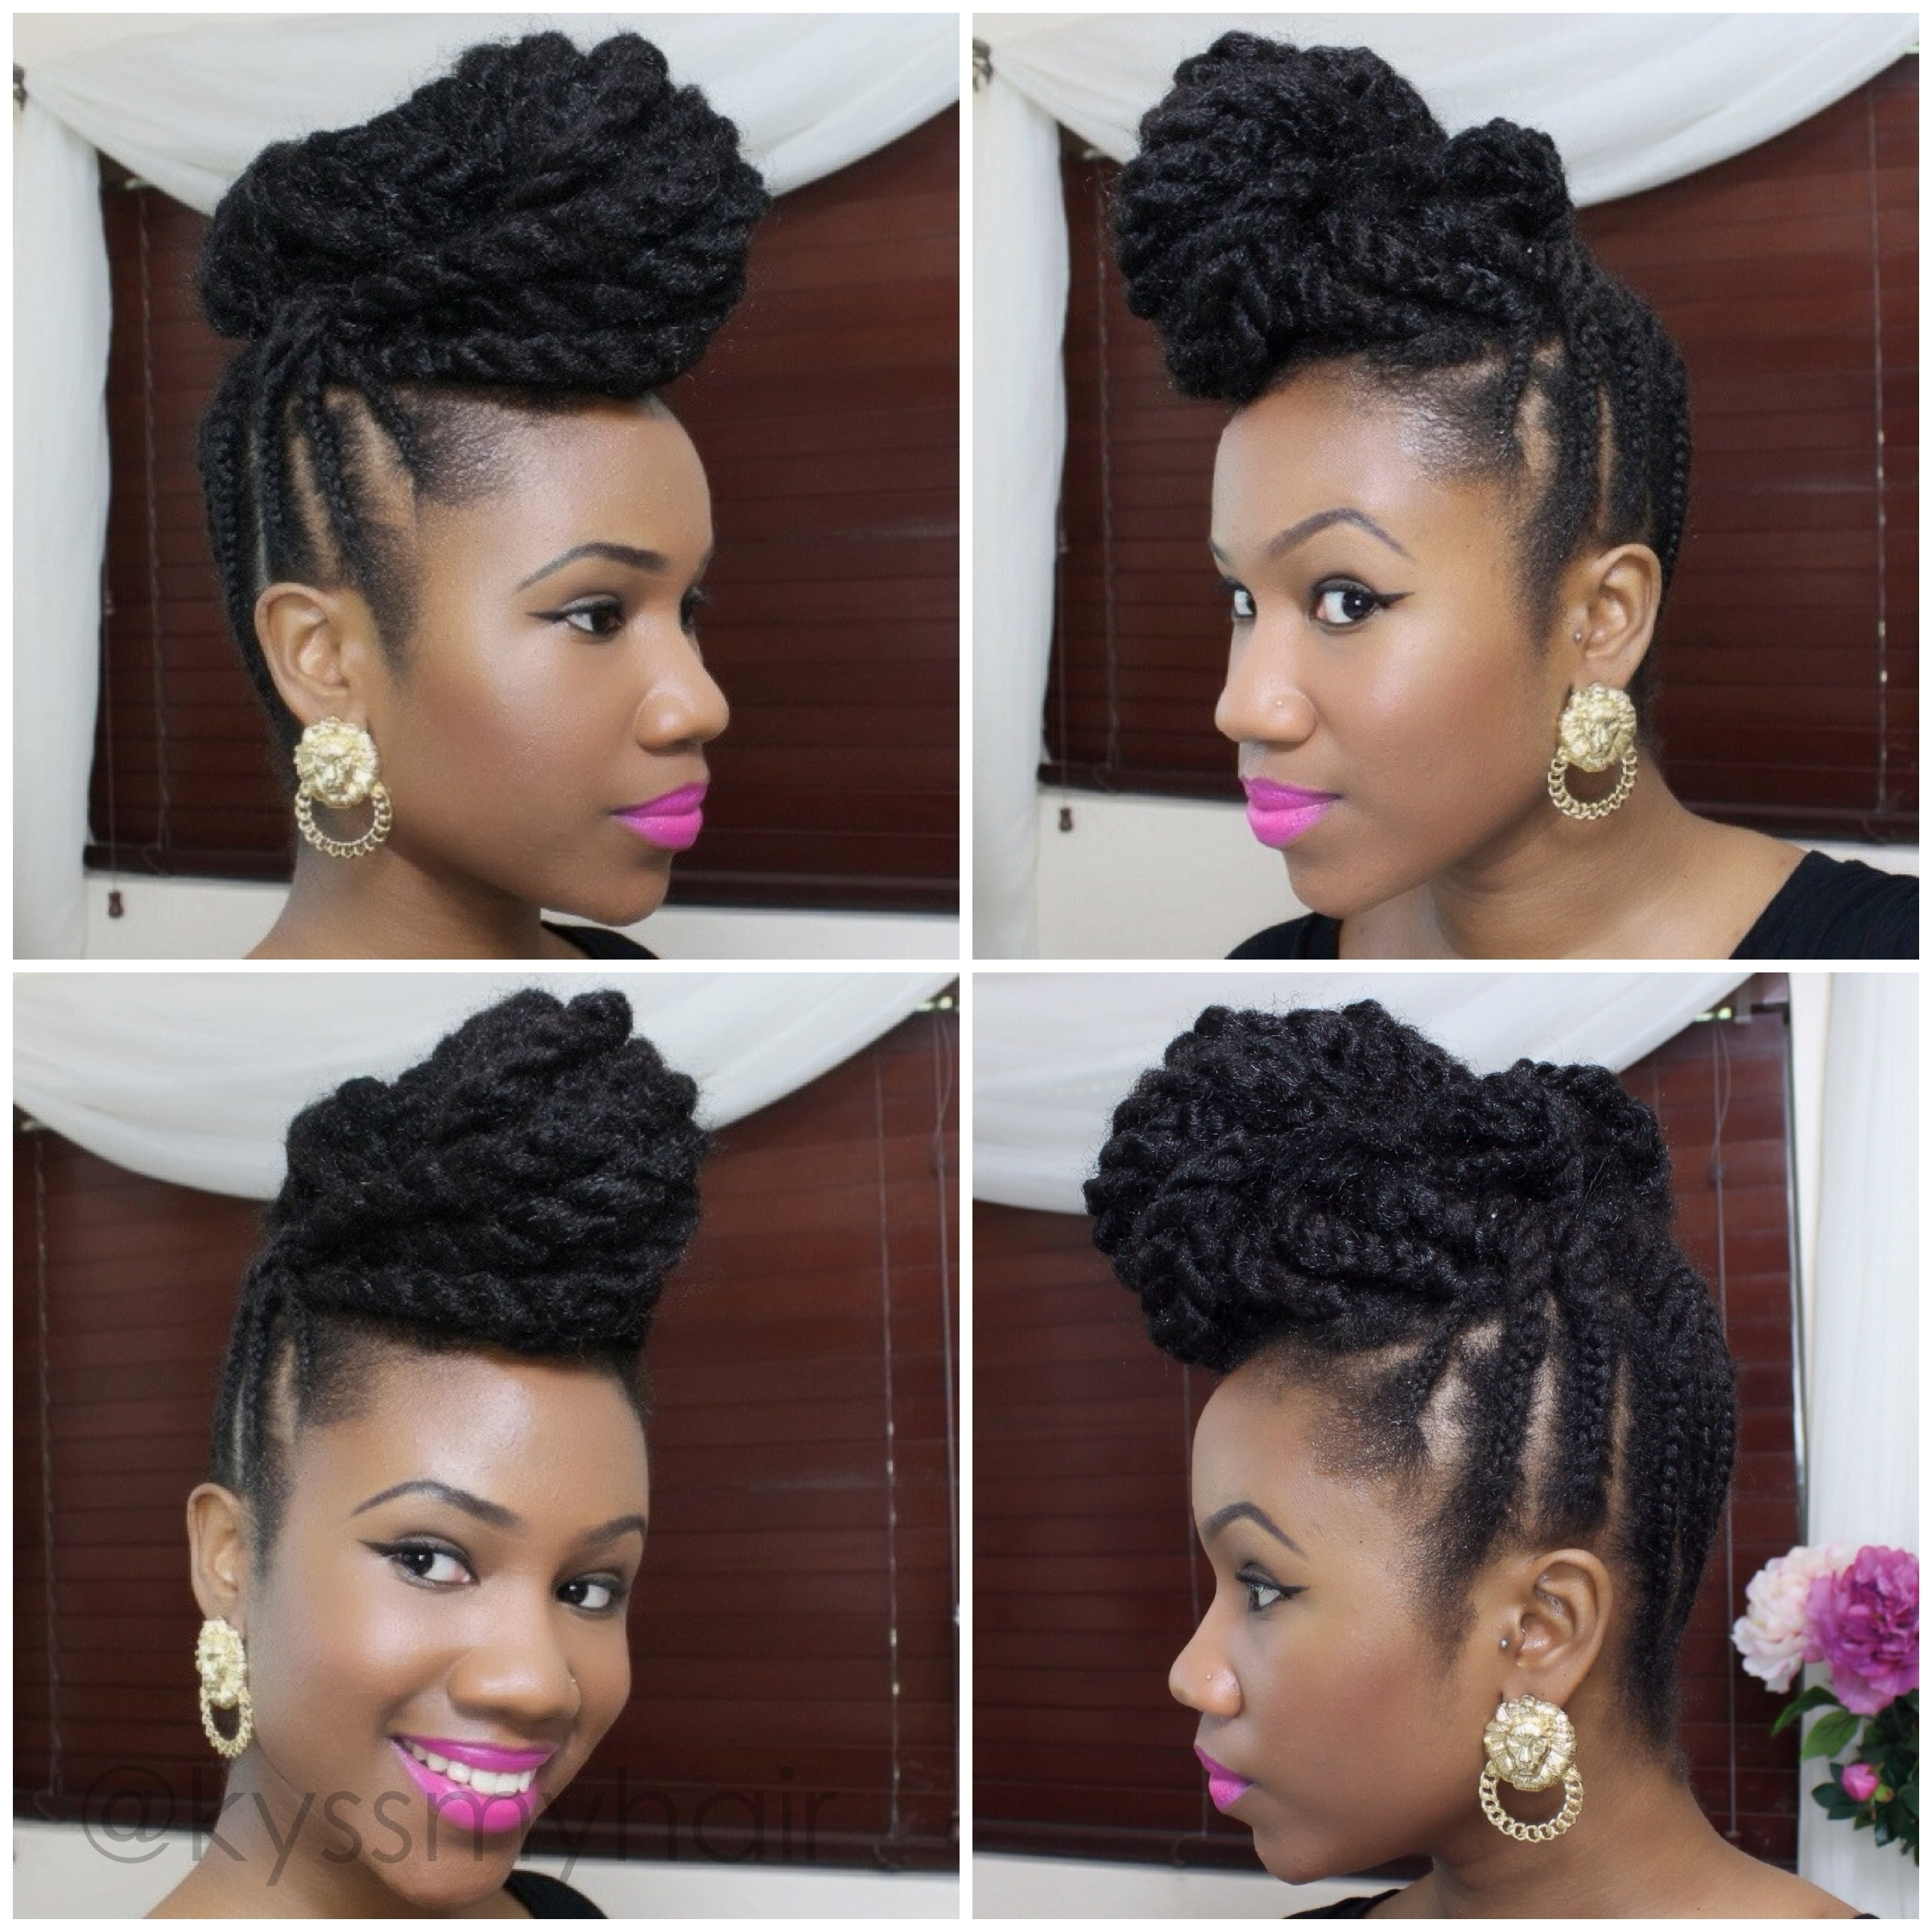 Photo: Natural Hair Braided Updo Hairstyles Braided Updo On Natural Pertaining To Natural Updo Hairstyles With Braids (View 14 of 15)